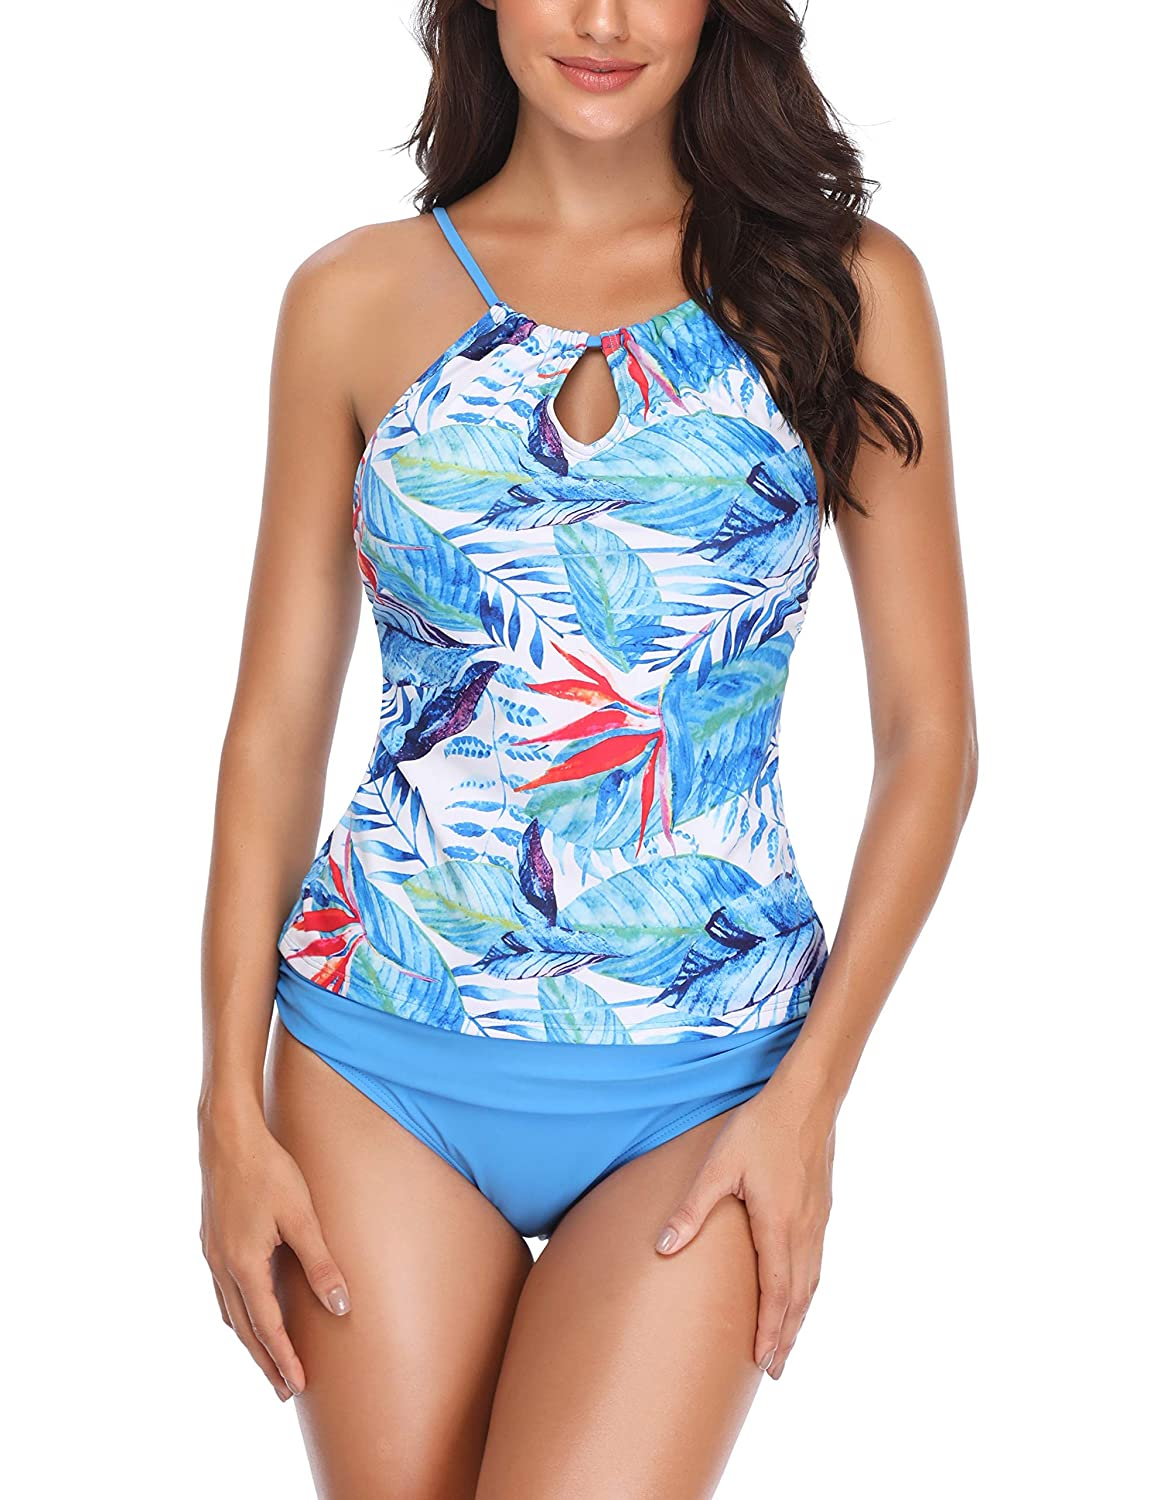 977bfe5684e85 Memory baby Women's Two Piece Plus Size Backless High Neck Halter Floral  Printed Top with Hipster Bottoms Tankini Set at Amazon Women's Clothing  store: